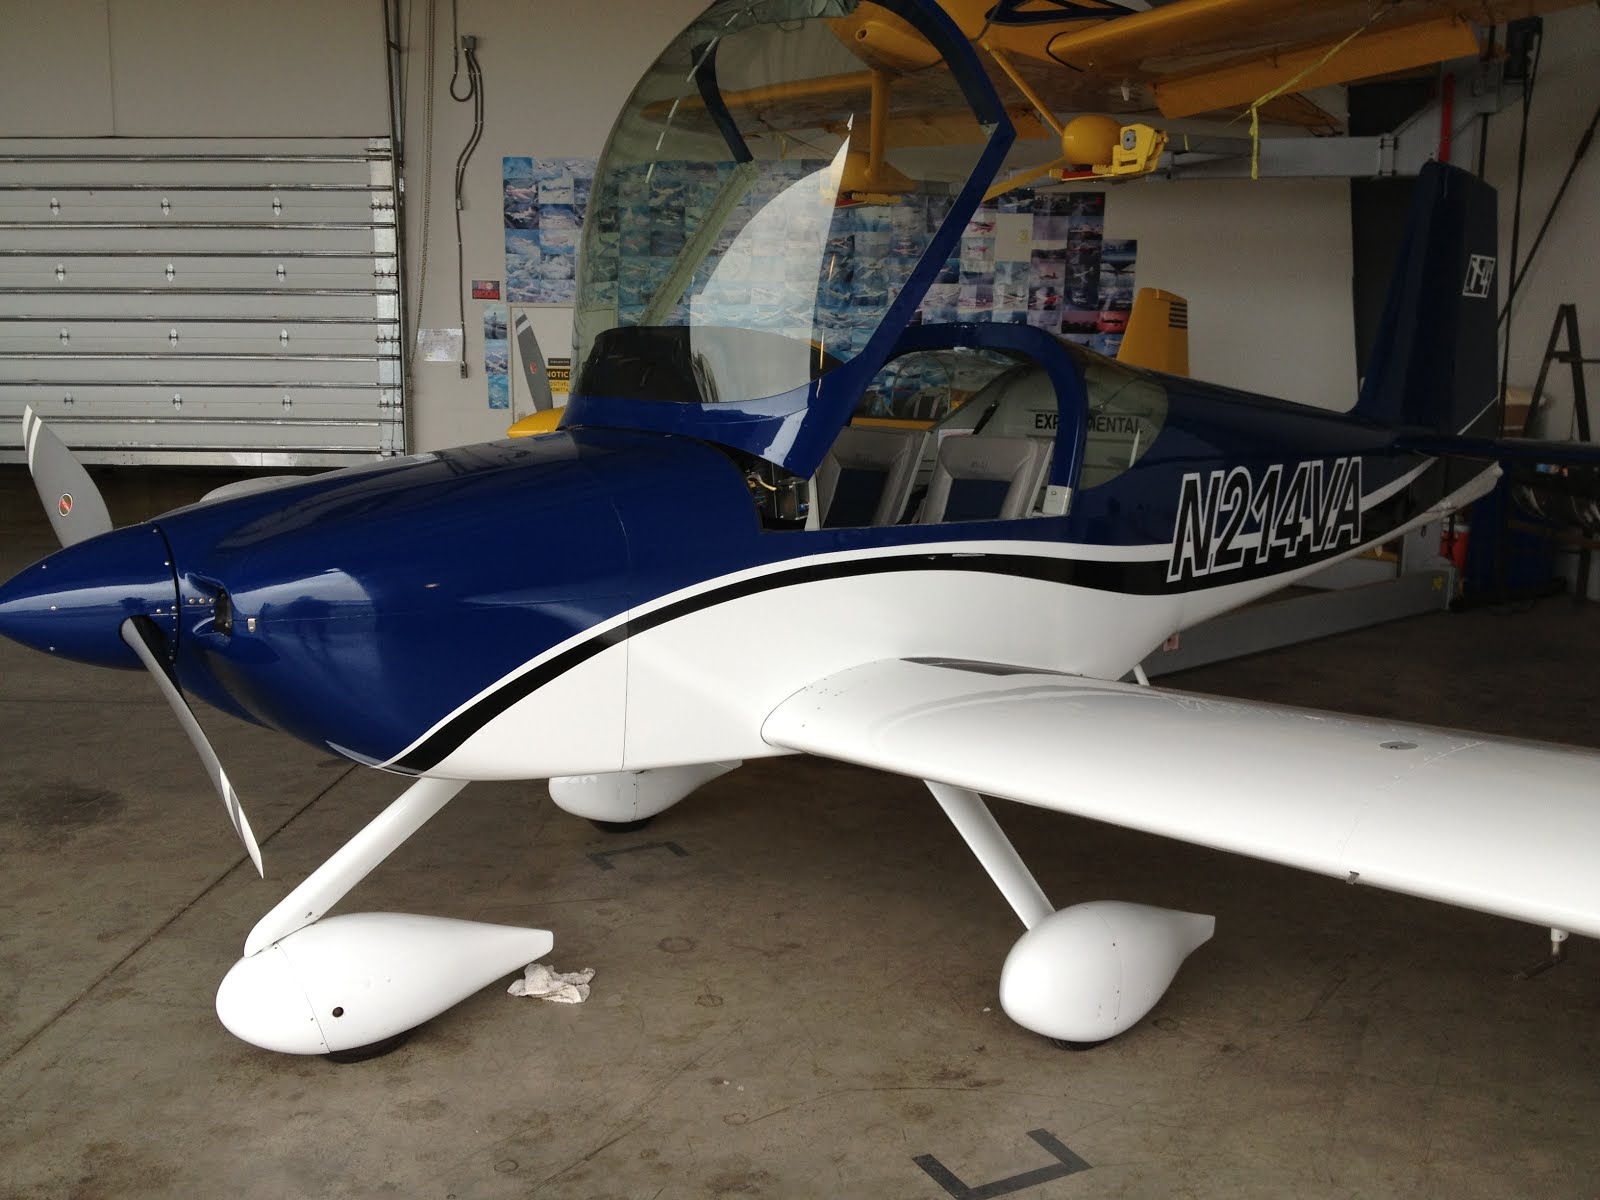 RV14a from Van's Aircraft